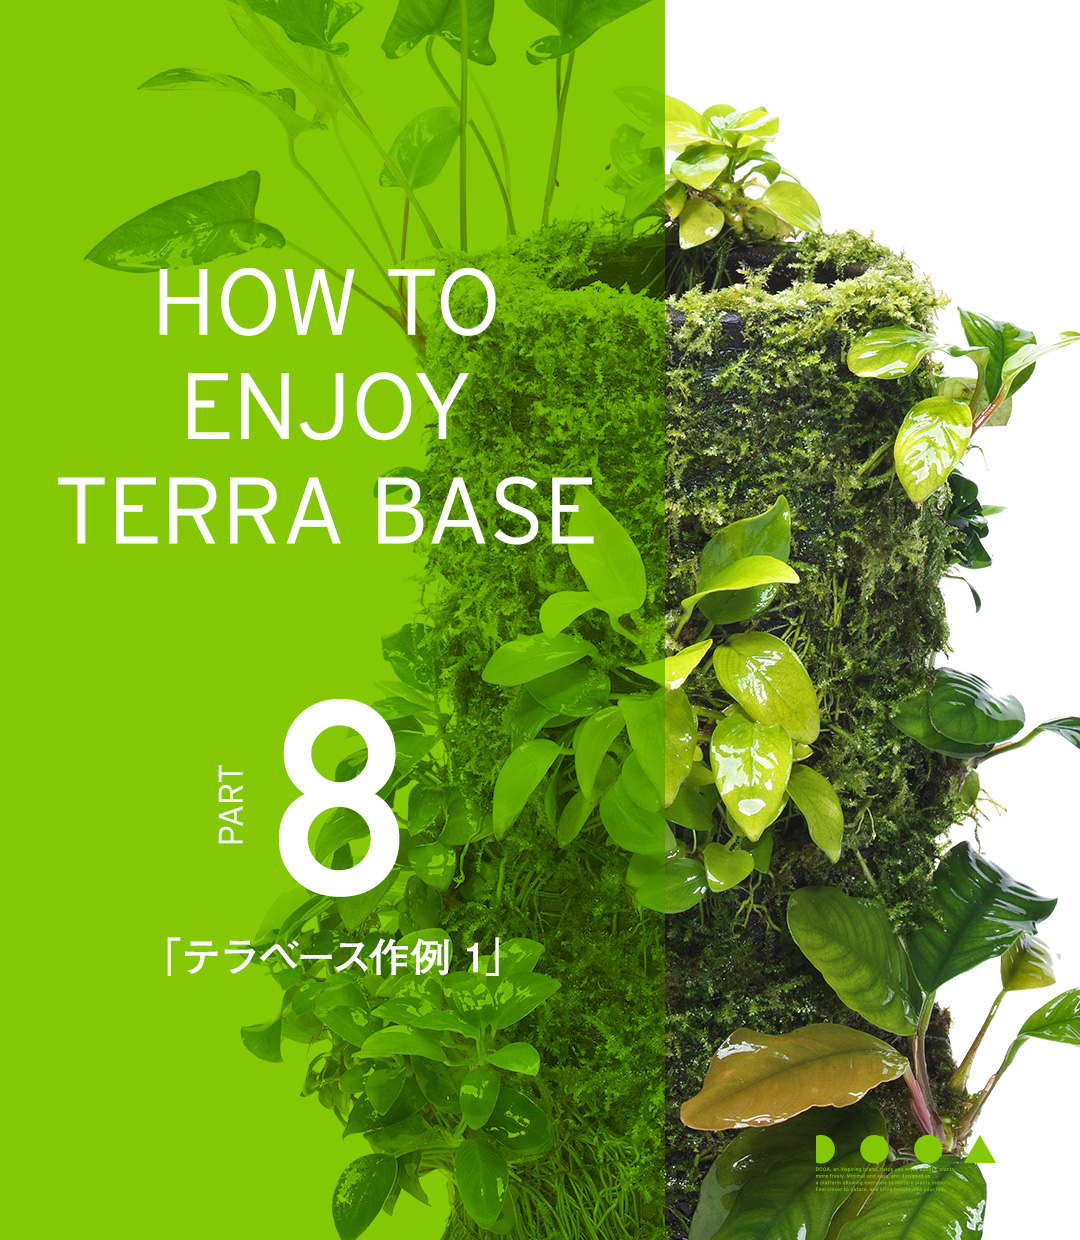 HOW TO ENJOY TERRA BASE PART8 「テラベース作例 1」